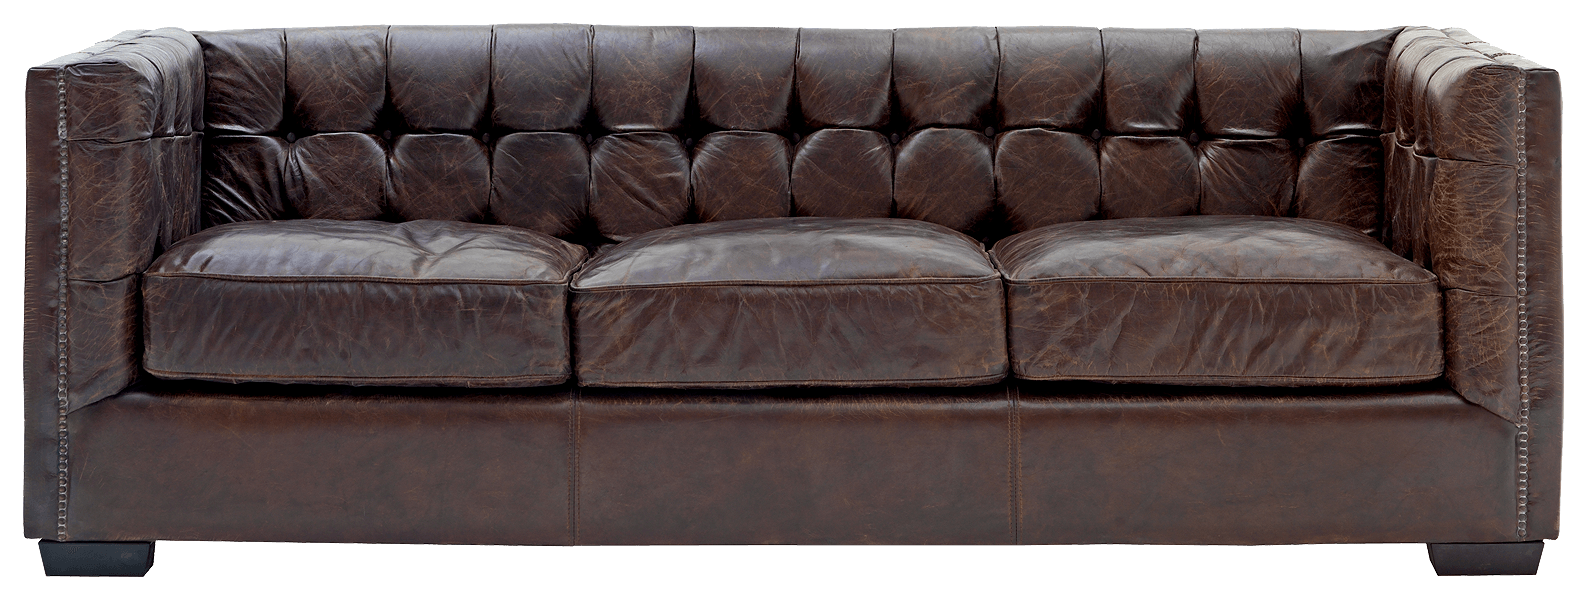 Leather Sofa Transparent Png Stickpng